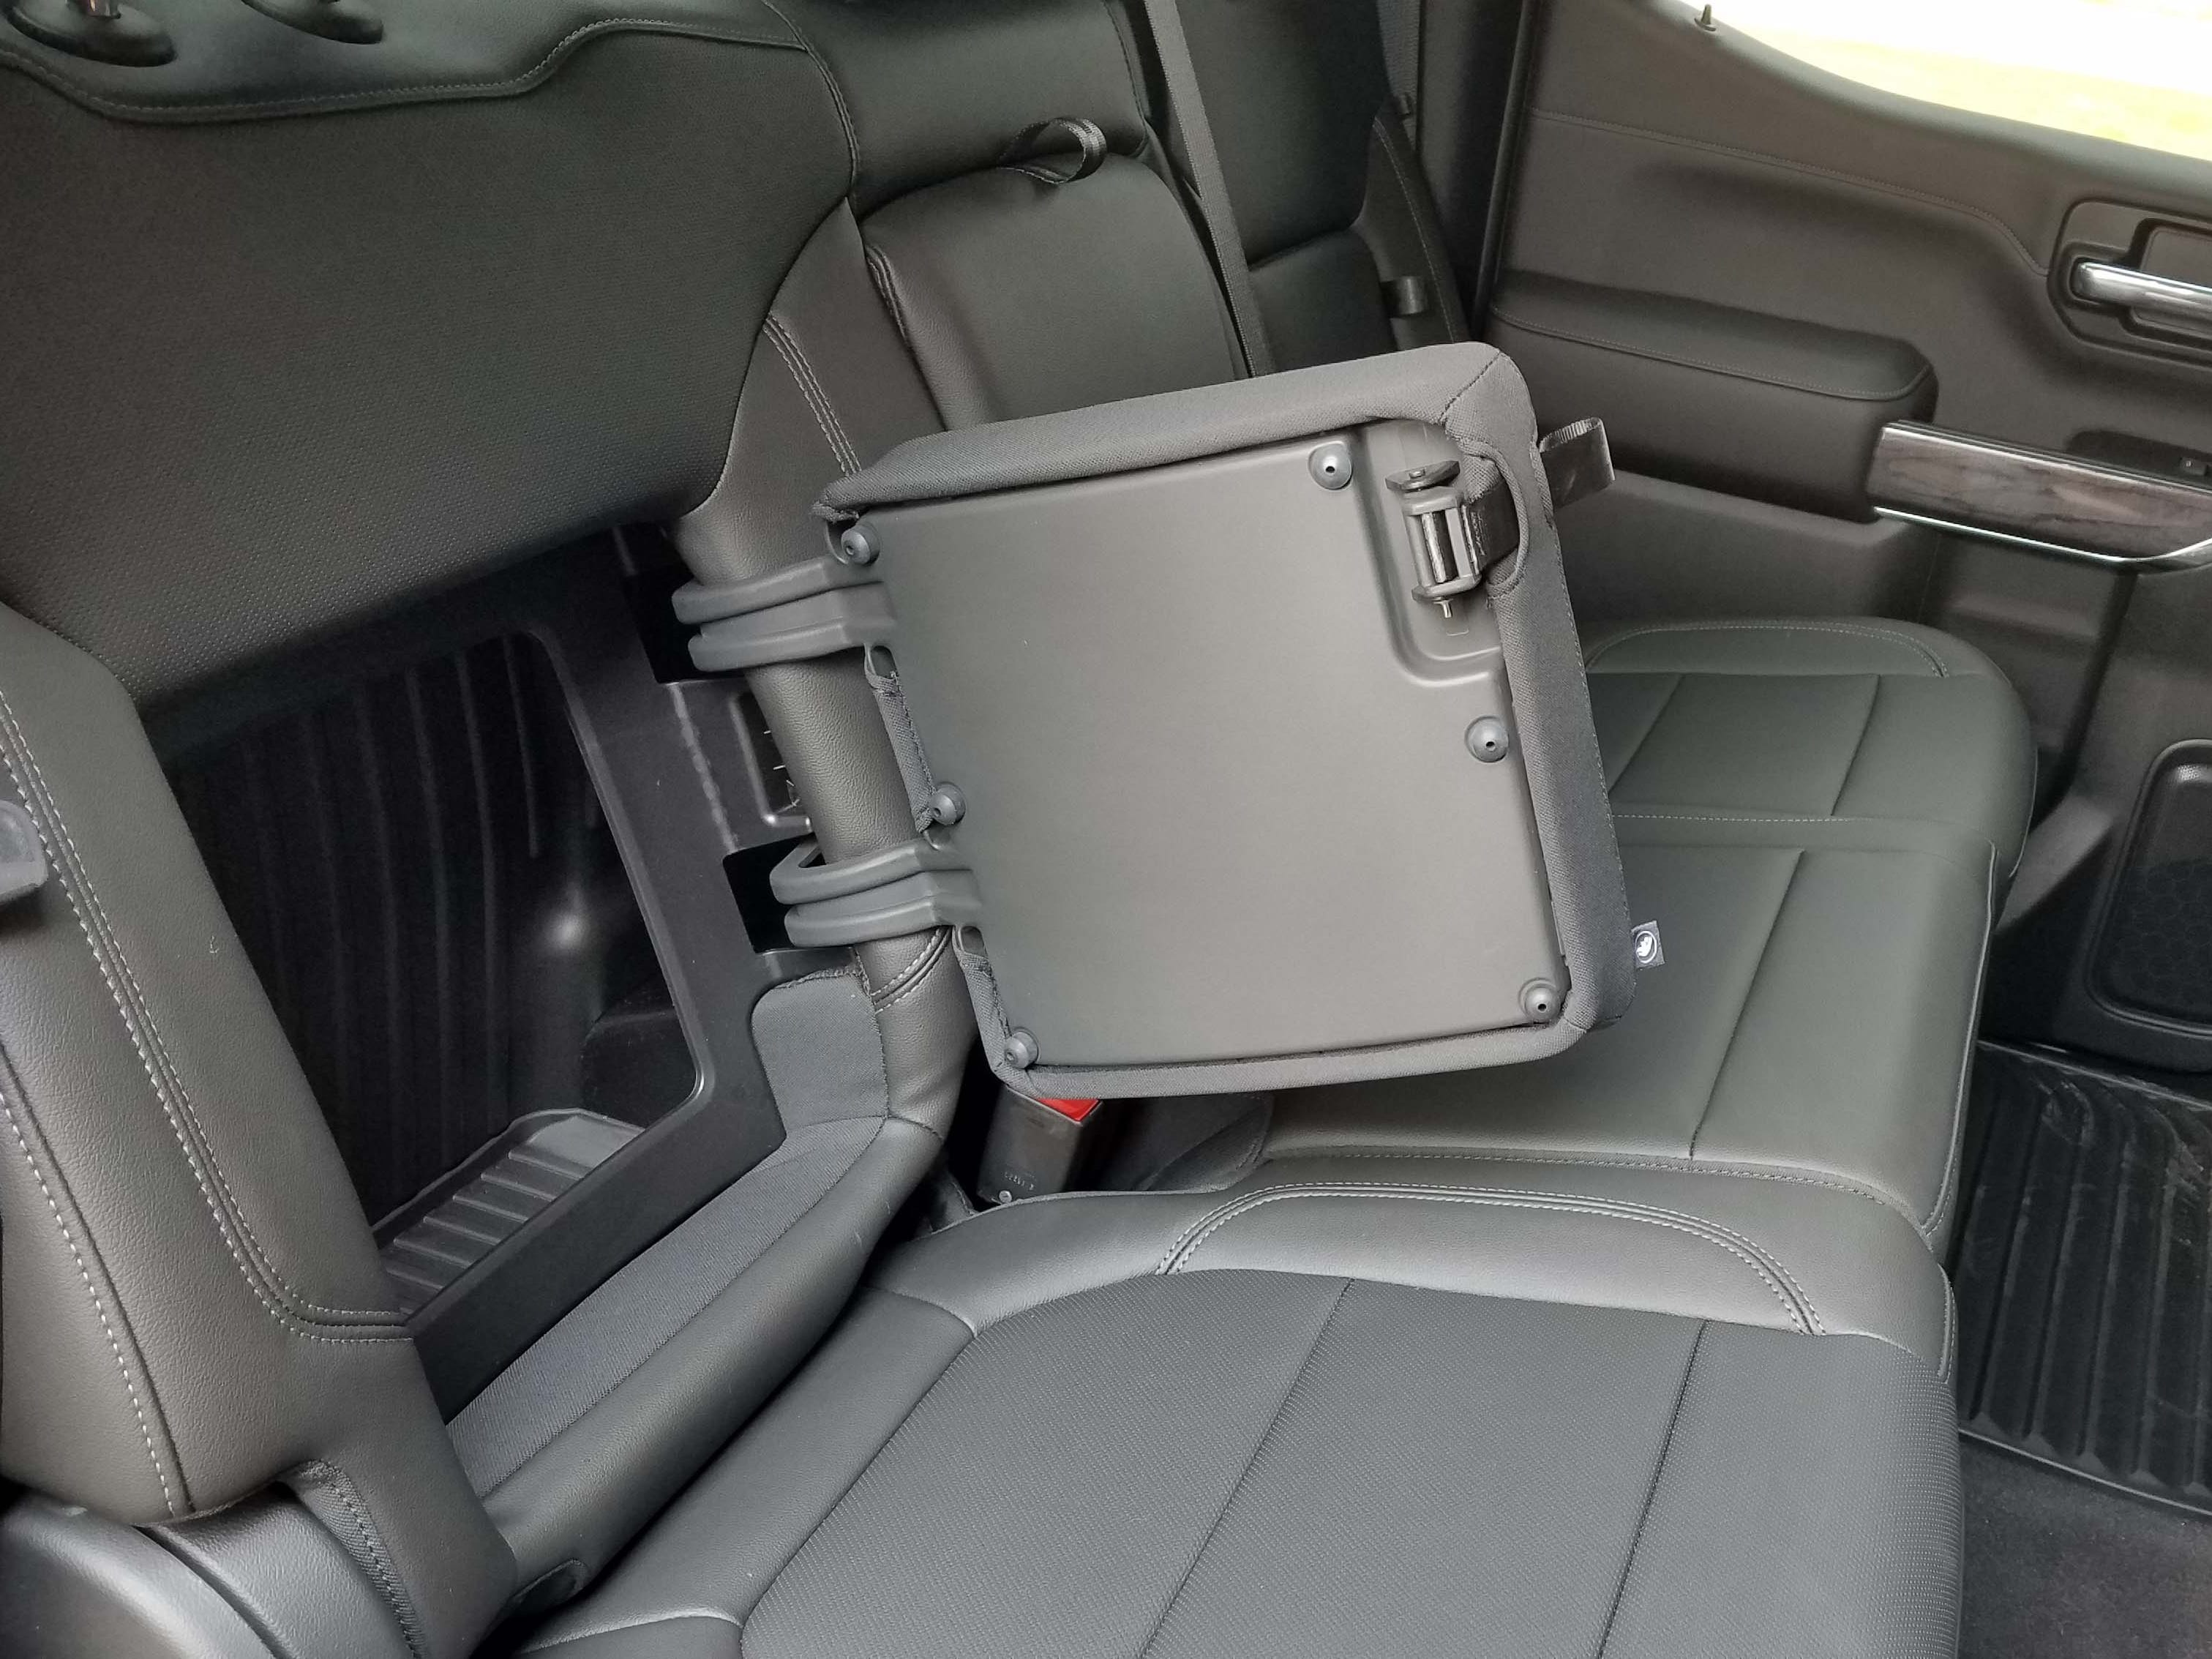 Hiding place. The 2019 Chevy Silverado gets nifty storage space in the rear seatbacks.